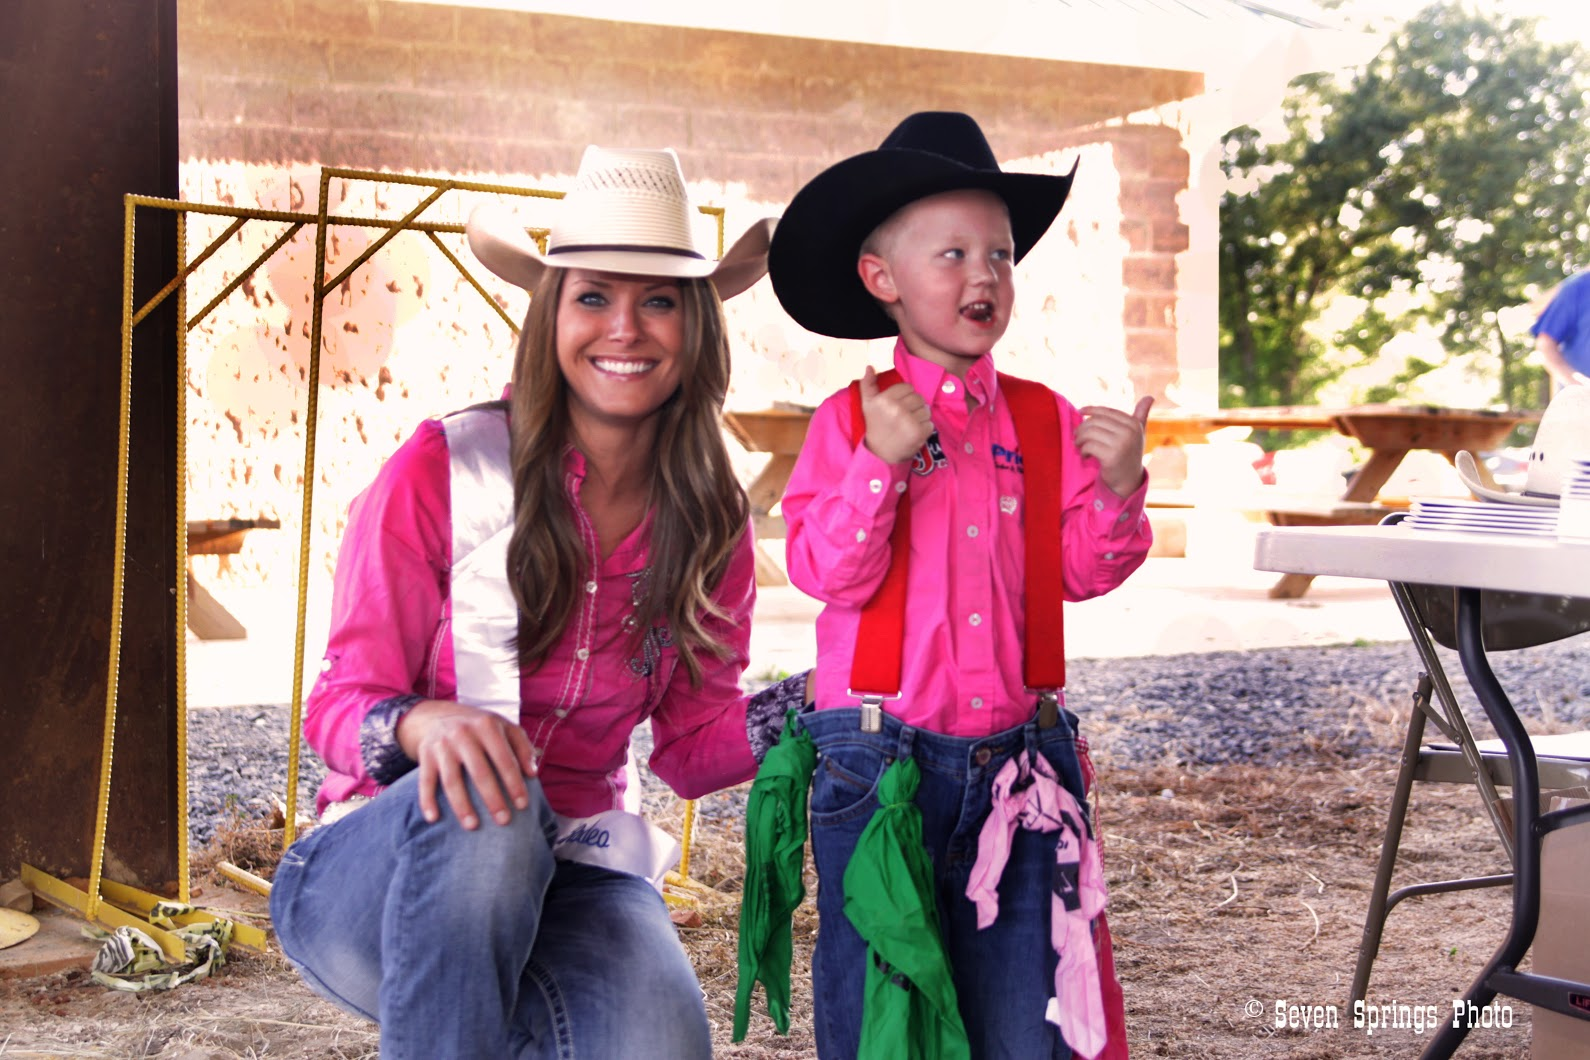 Miss Rodeo with child fan